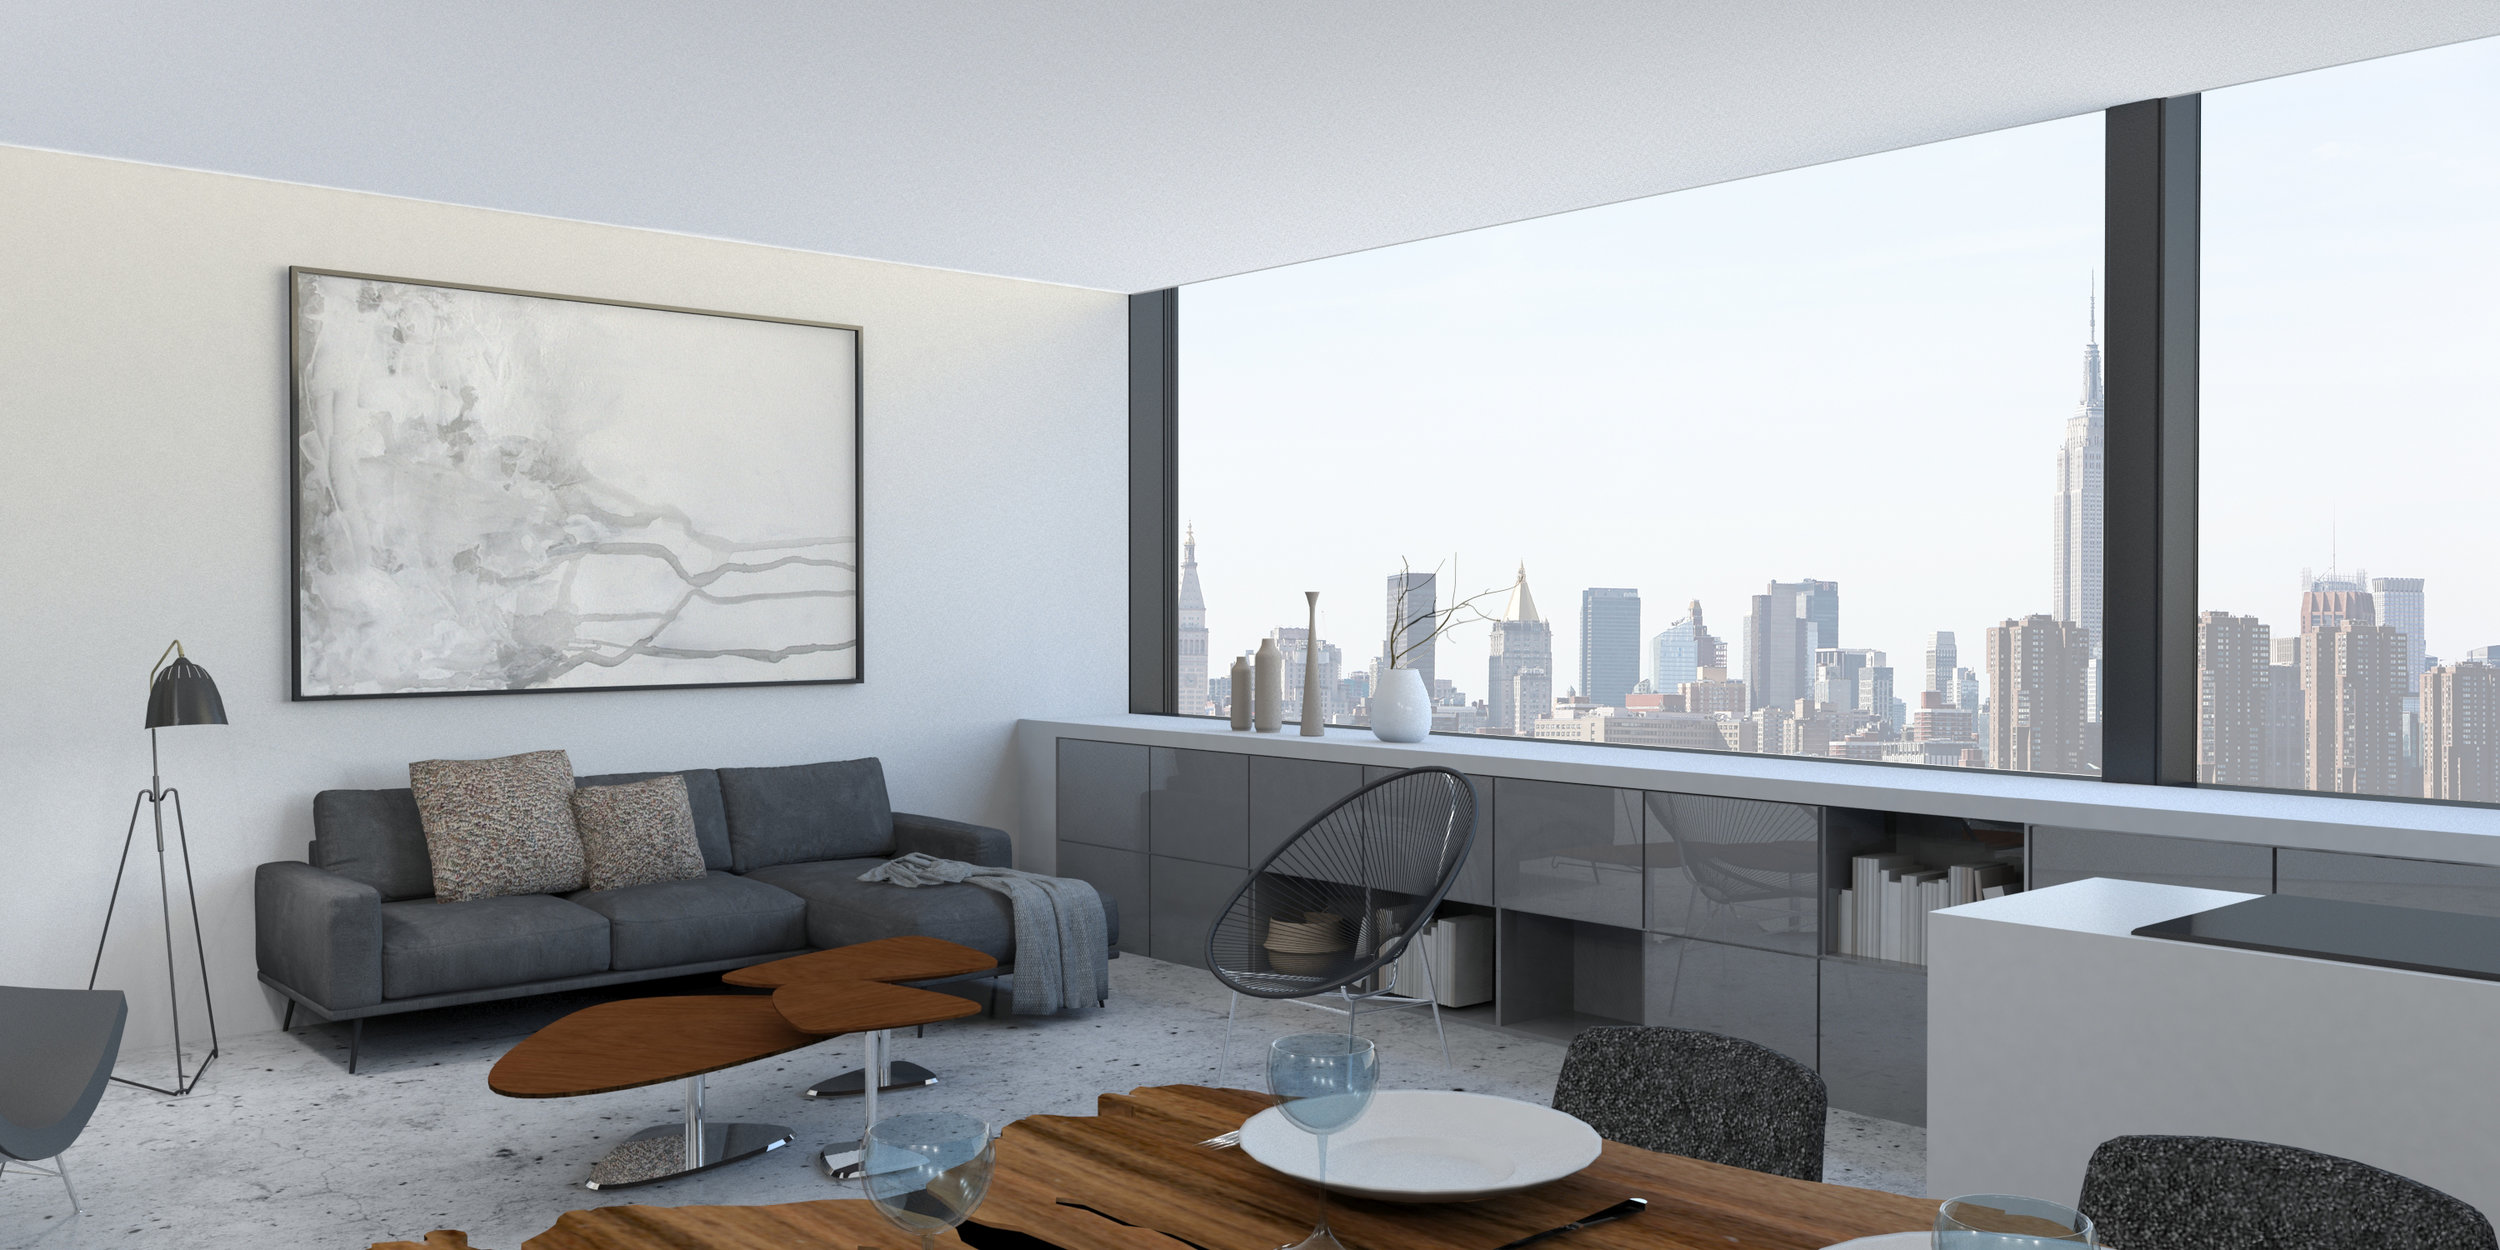 15 foot wide panels provide amazing panoramic views